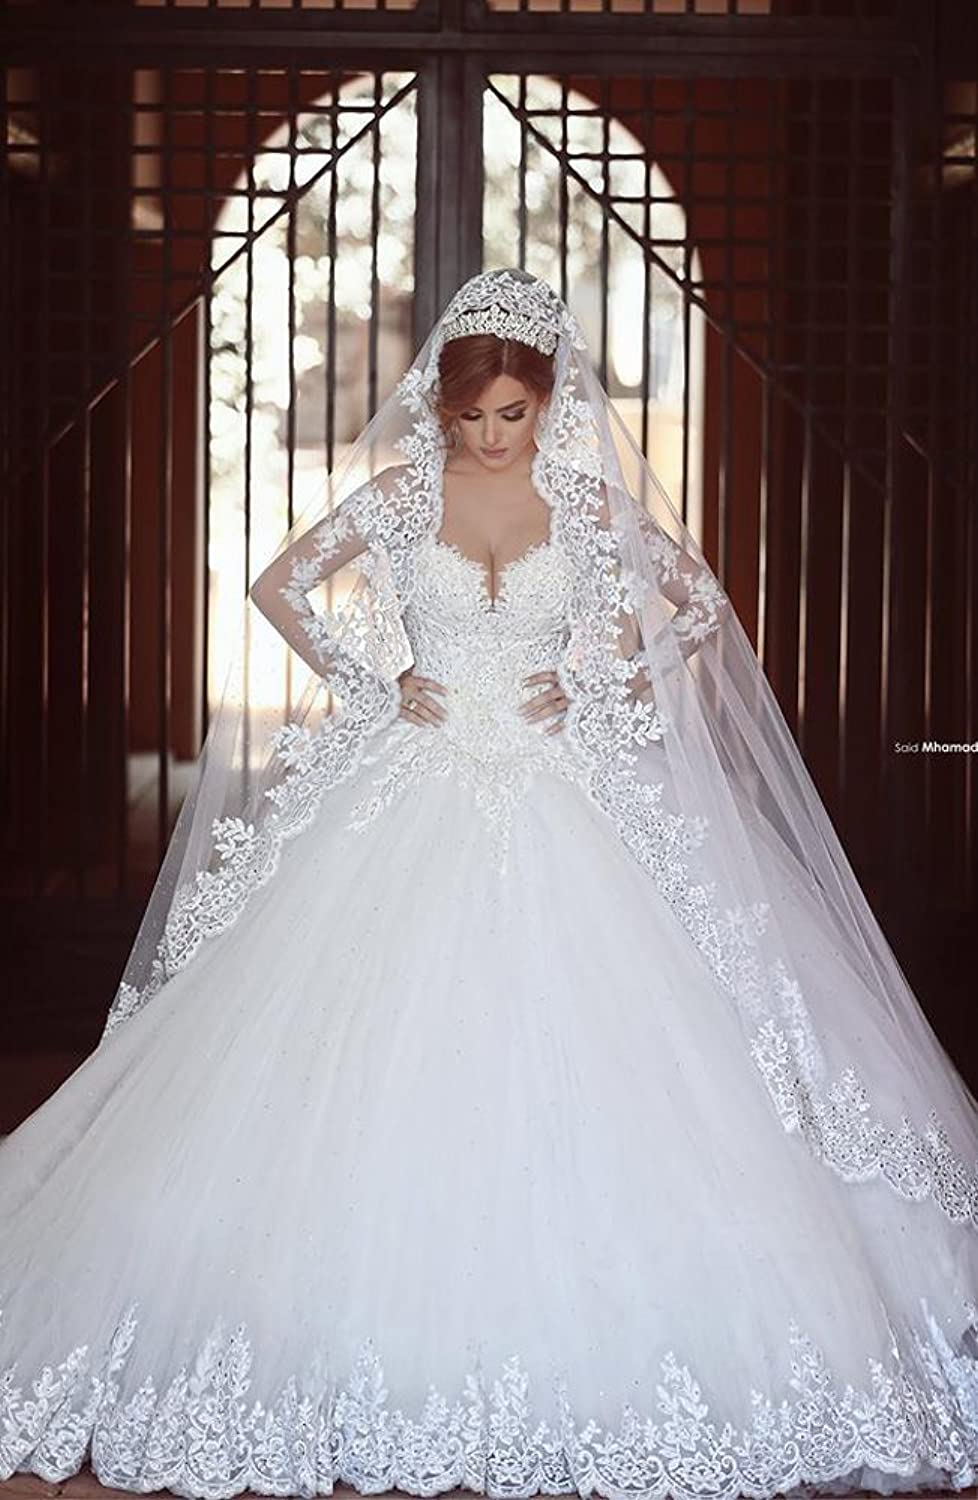 BSRVLG ie UTF8&dpID DBL&dpSrc sims&preST AC UL amazon com wedding dresses Bridess Women s Lace Appliques Sweetheart Ball Gown Wedding Dress Long Sleeve at Amazon Women s Clothing store